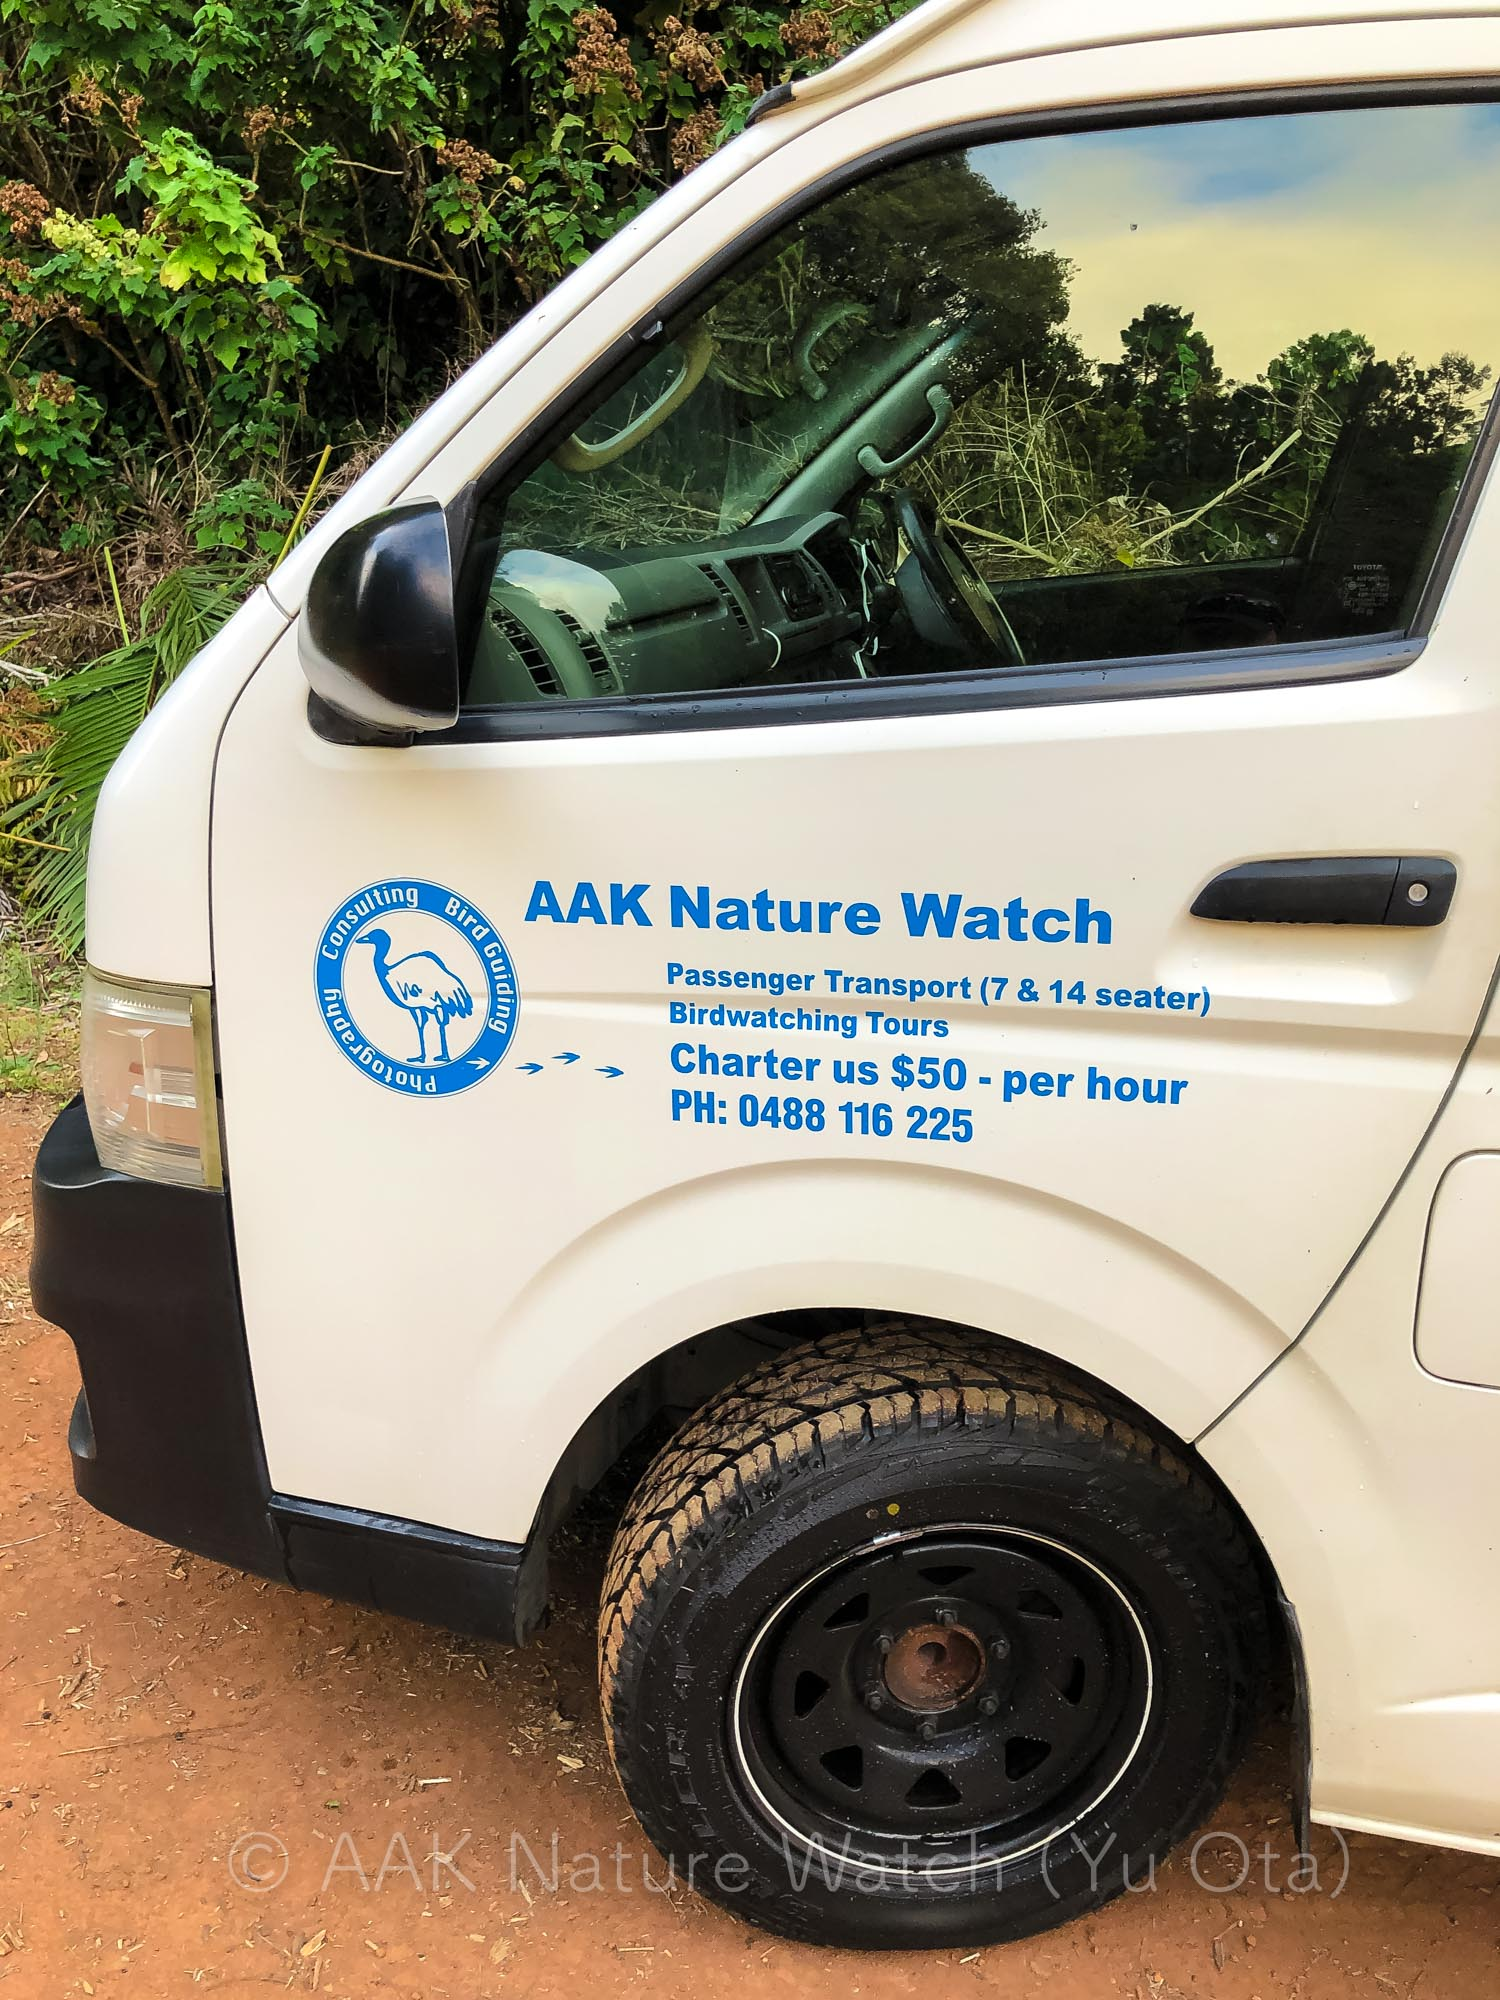 AAK Nature Watch fleet